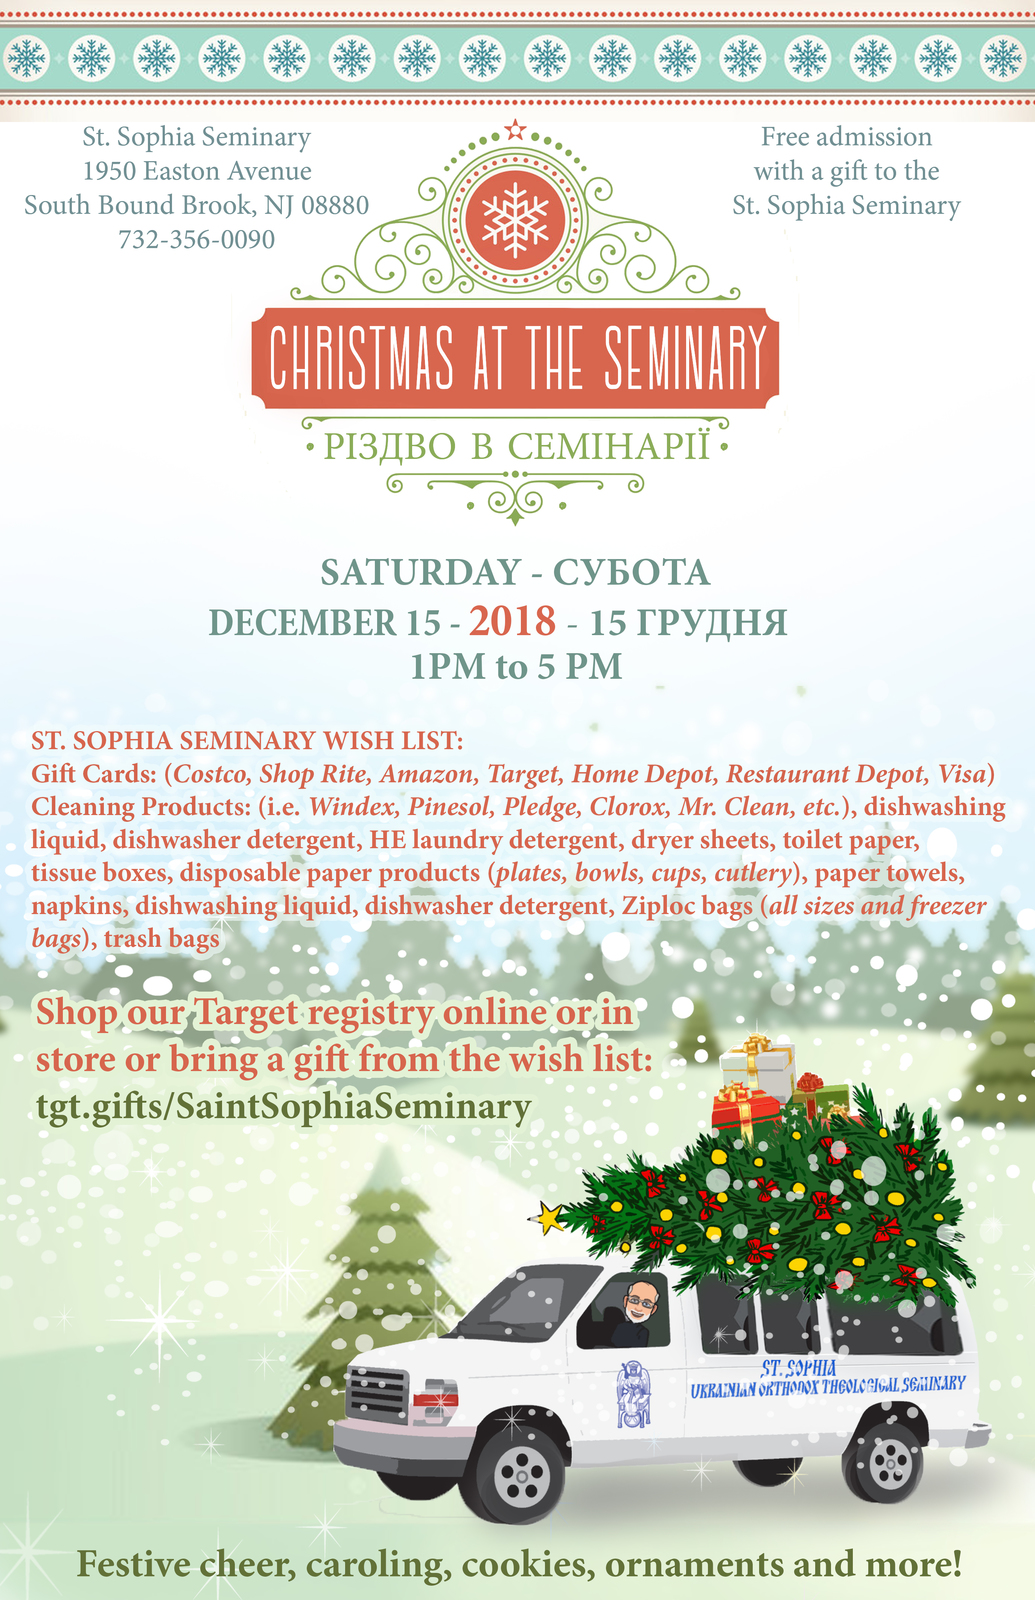 St. Sophia Seminary - 15 December, 2018 - Christmas at the Seminary